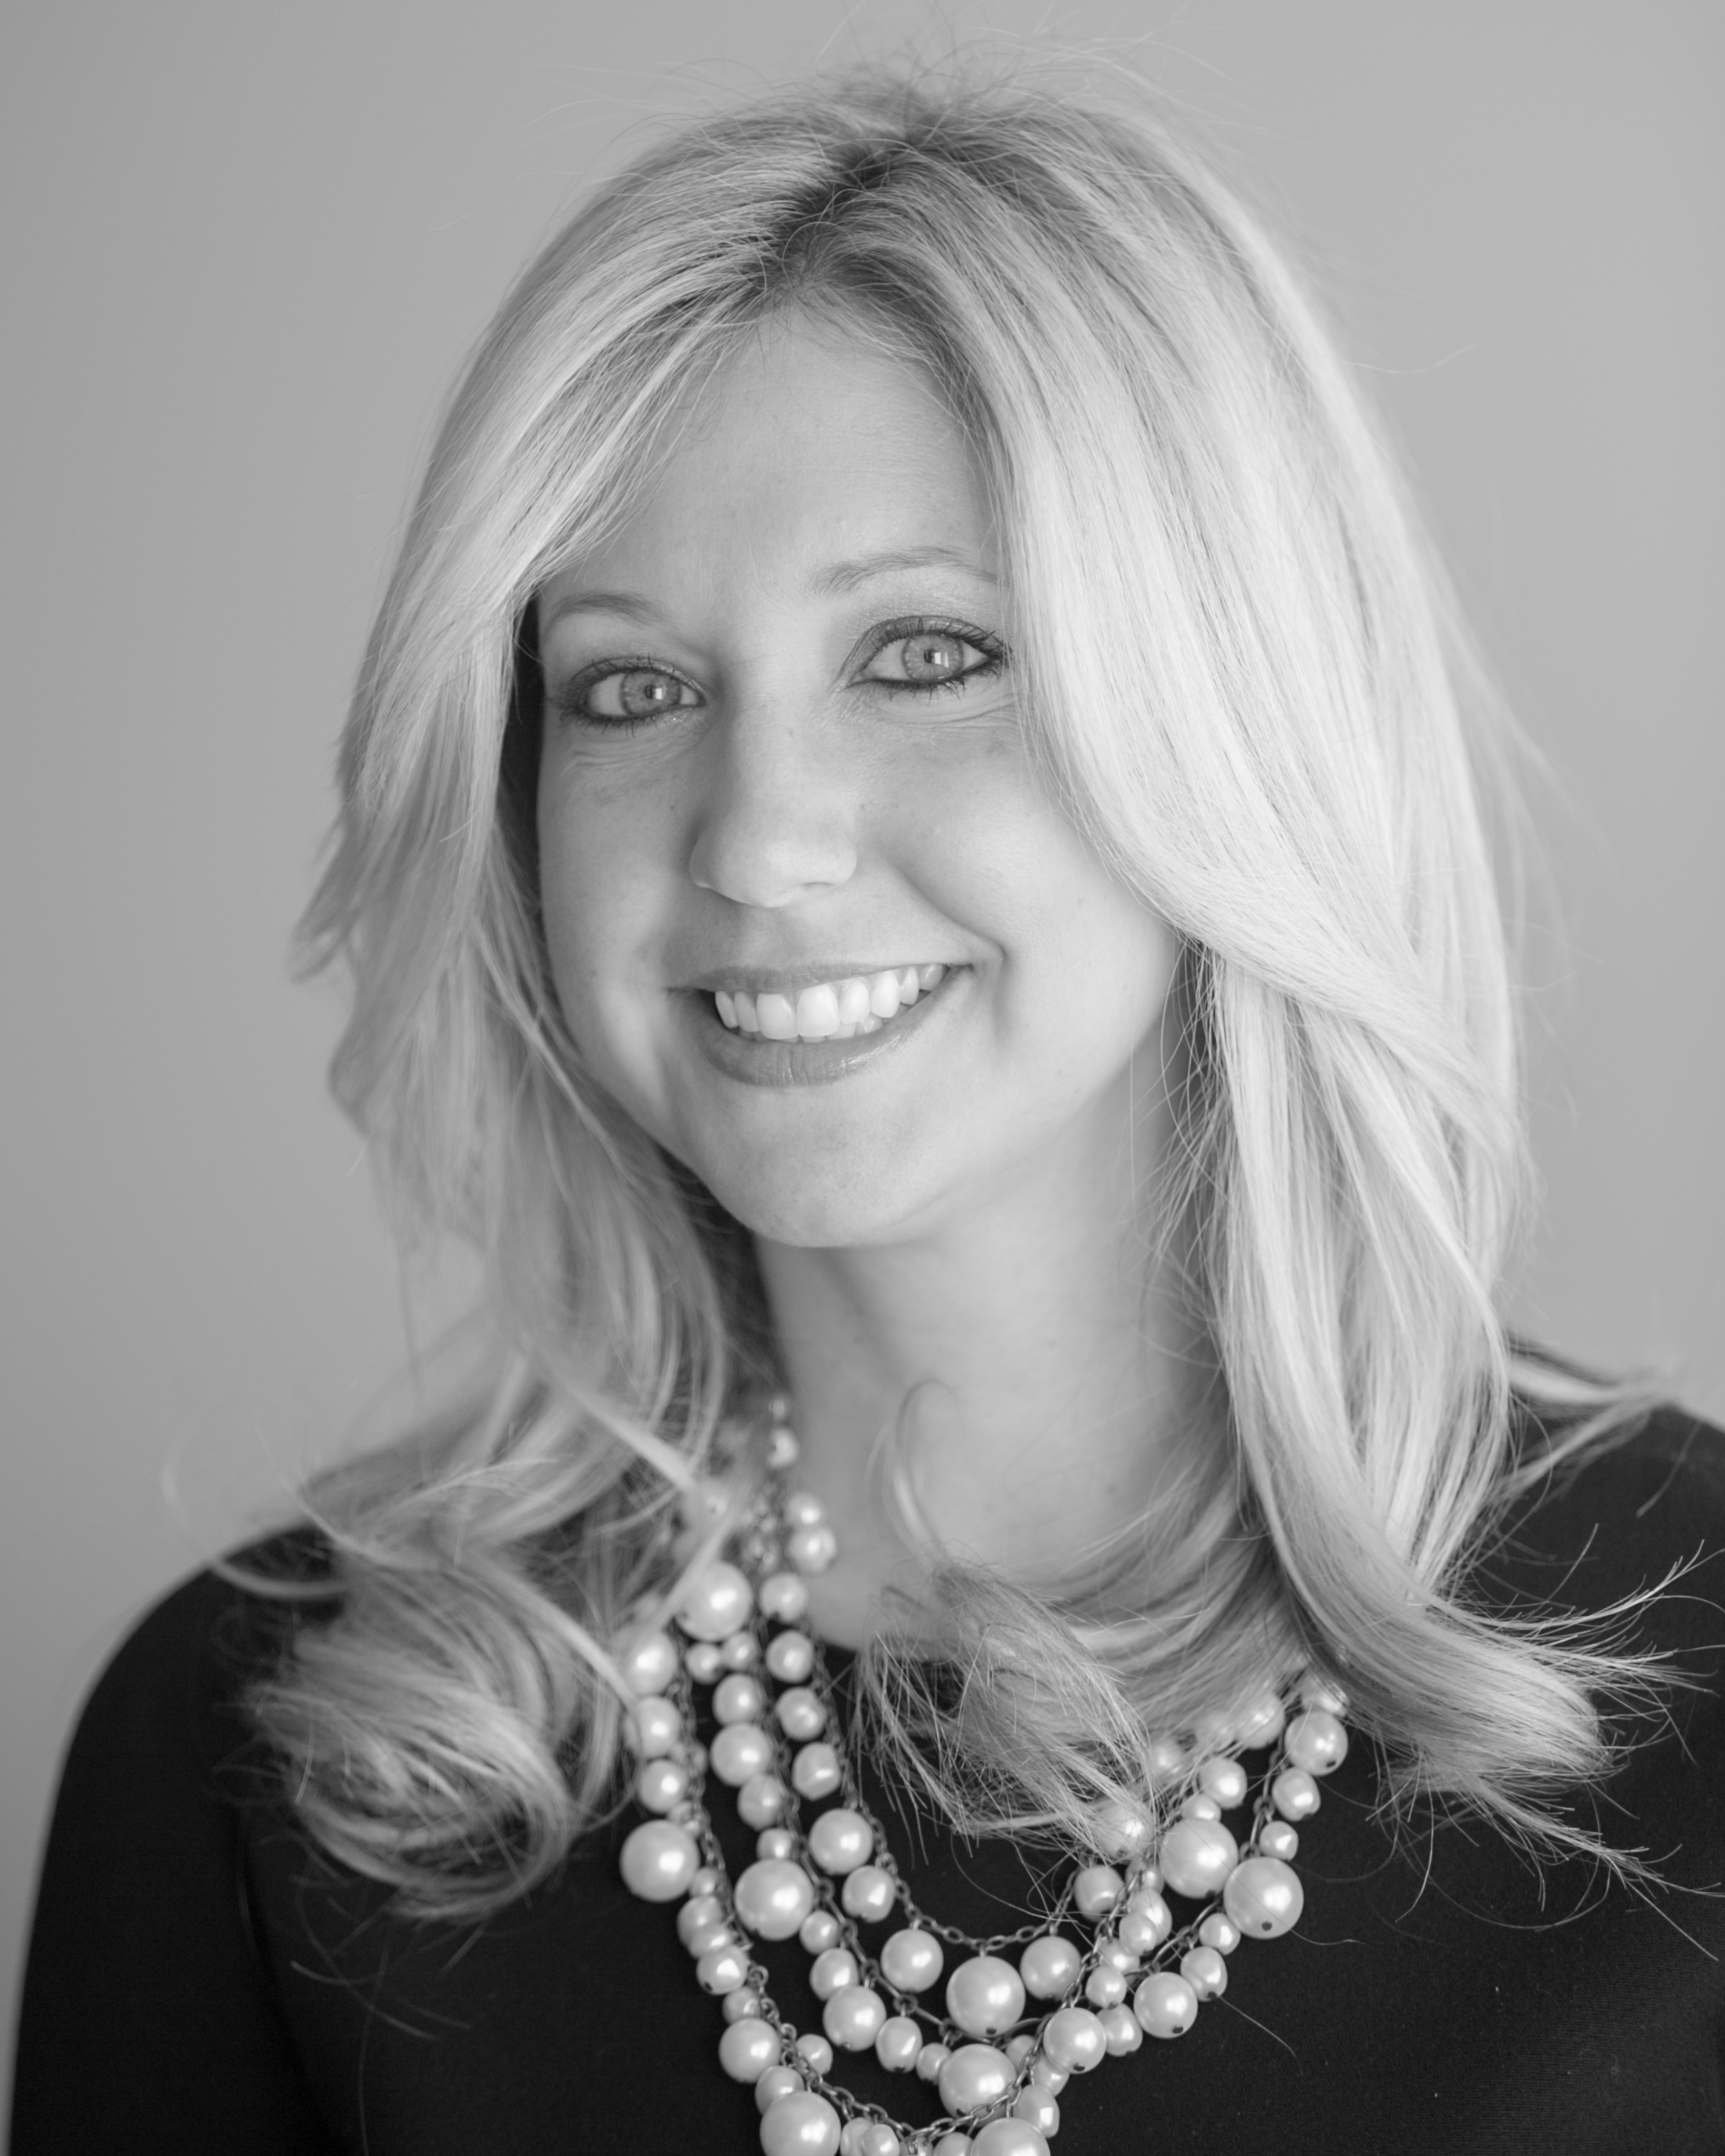 Shannon Hettinger - Associate Agent | +1.202.503.7833shettinger@ttrsir.comEnthusiastic, results-driven marketer with expertise in relationship building, strategy, and digital marketing/big data. With 10 years of digital advertising experience, Shannon has a keen understanding of how users engage across multiple platforms and devices. This insight is crucial to successfully market and sell real estate as more than 90% of homebuyers actively search online. Shannon's passion for real estate and strategic marketing combined with her drive and determination, help drive impact and real results for her clients. Originally from the Philadelphia area, Shannon was inspired to pursue a career in real estate after shadowing her father's residential and commercial real estate endeavors. In 2008, Shannon received a B.S. in Business Administration with a Marketing Concentration from Towson University in Maryland; in 2007, she studied abroad at Richmond University in London, England where she grew an appreciation for Old World architecture. Shannon is a licensed real estate agent in the District of Columbia and is thrilled to put her passion for the industry and marketing knowledge to work.